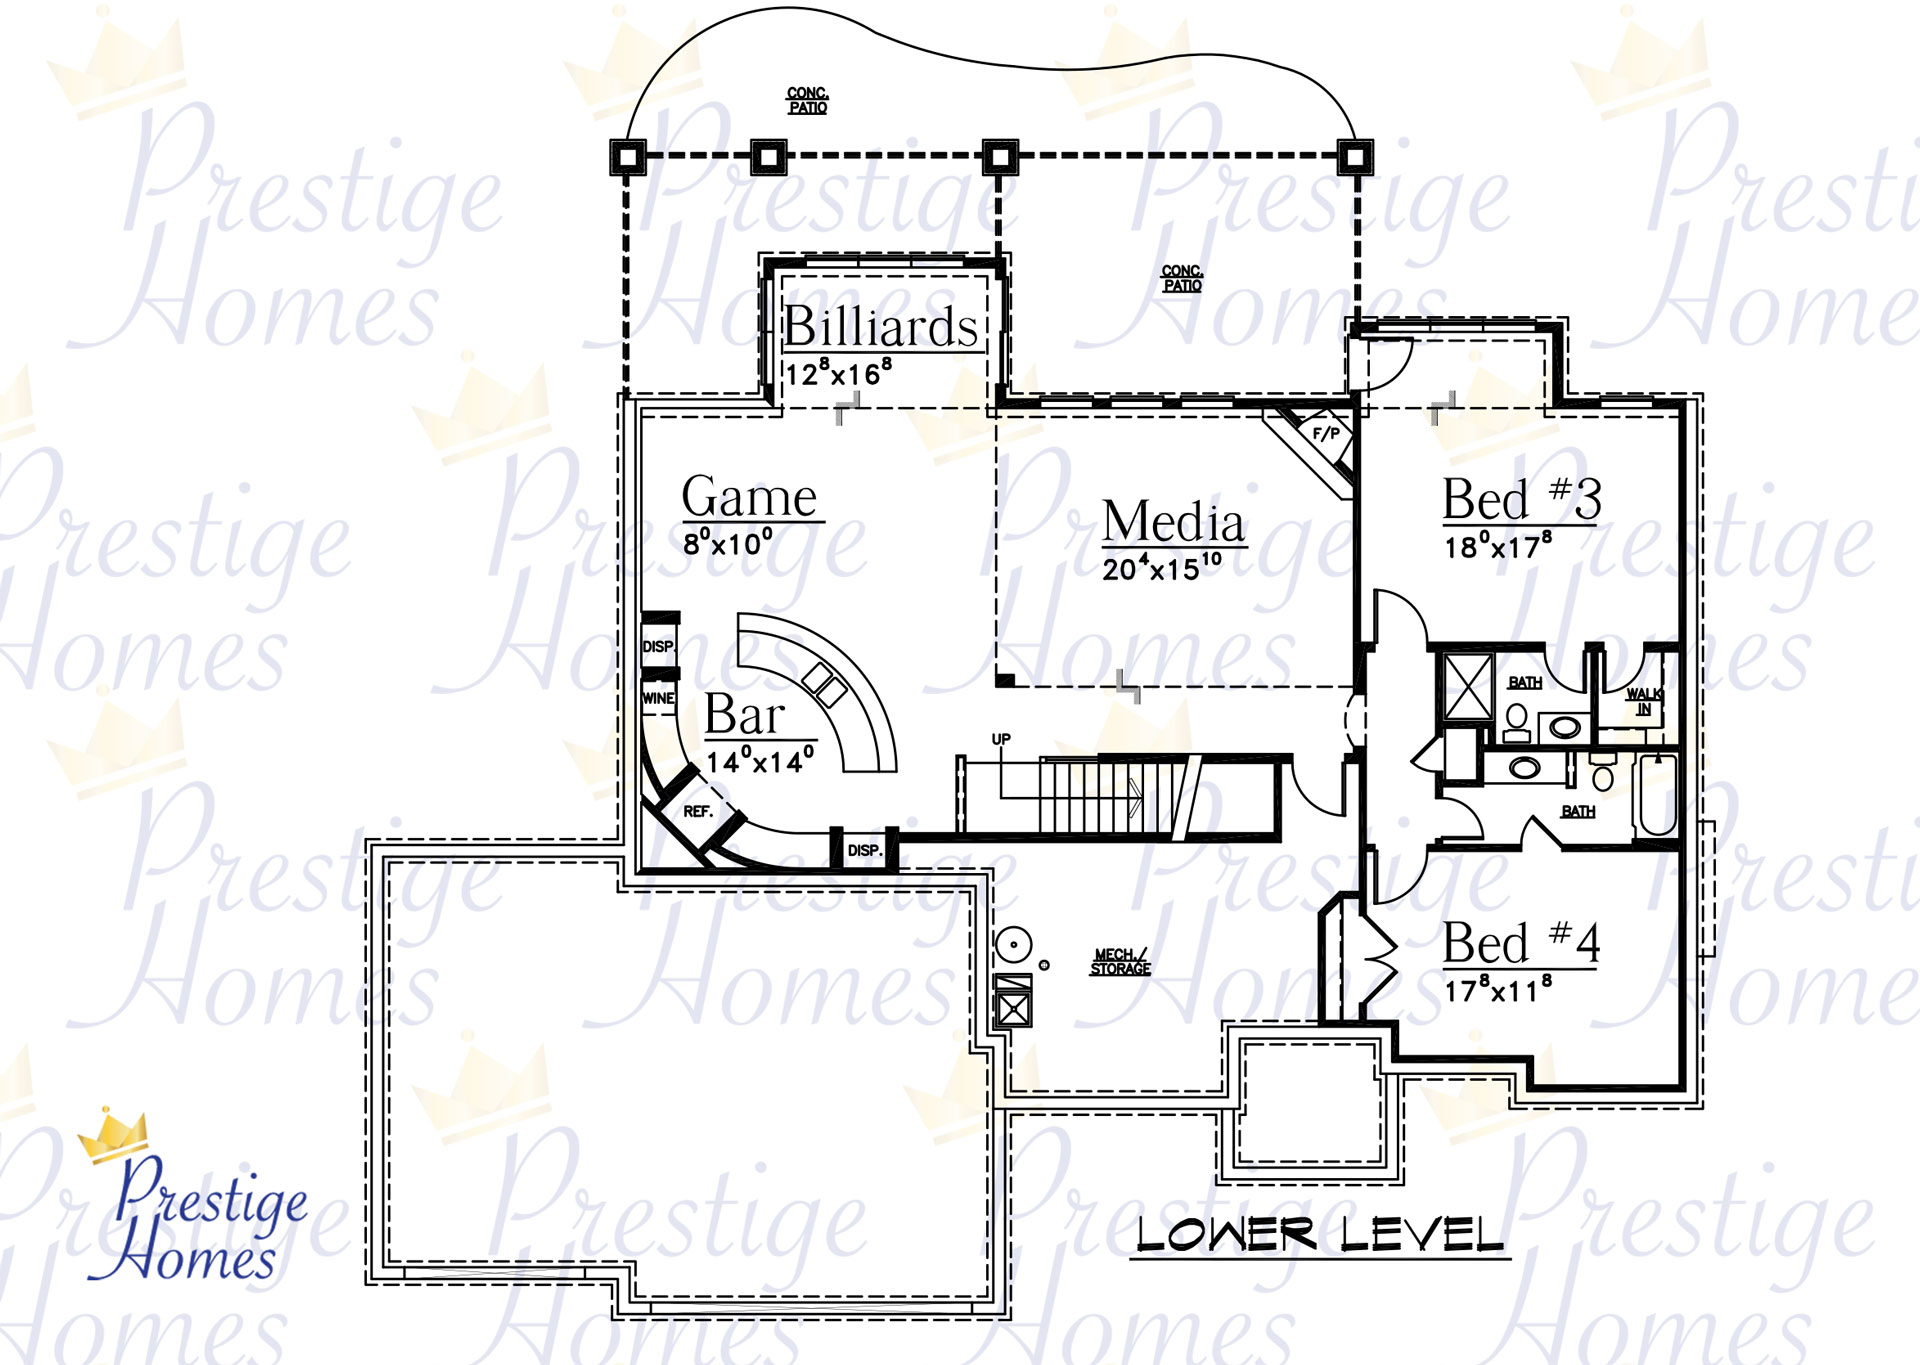 Prestige Homes - Floor Plan - Bella 3 Bedroom Lower